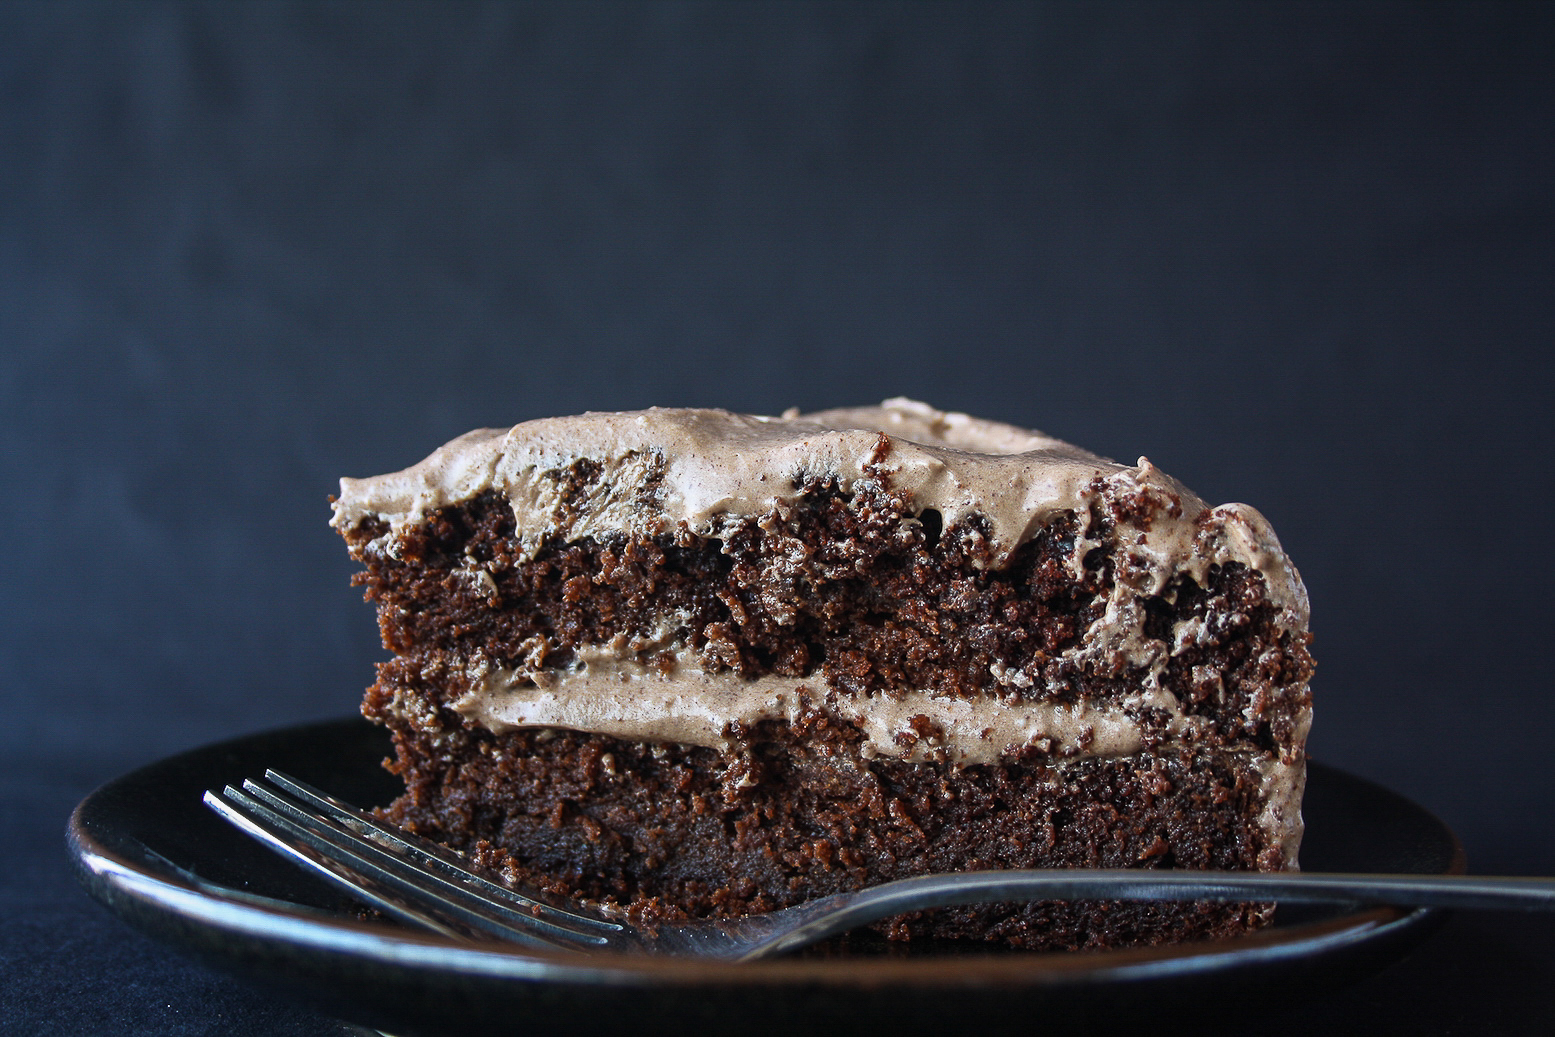 Moist, decadent chocolate layer cake with tangy cream cheese frosting!